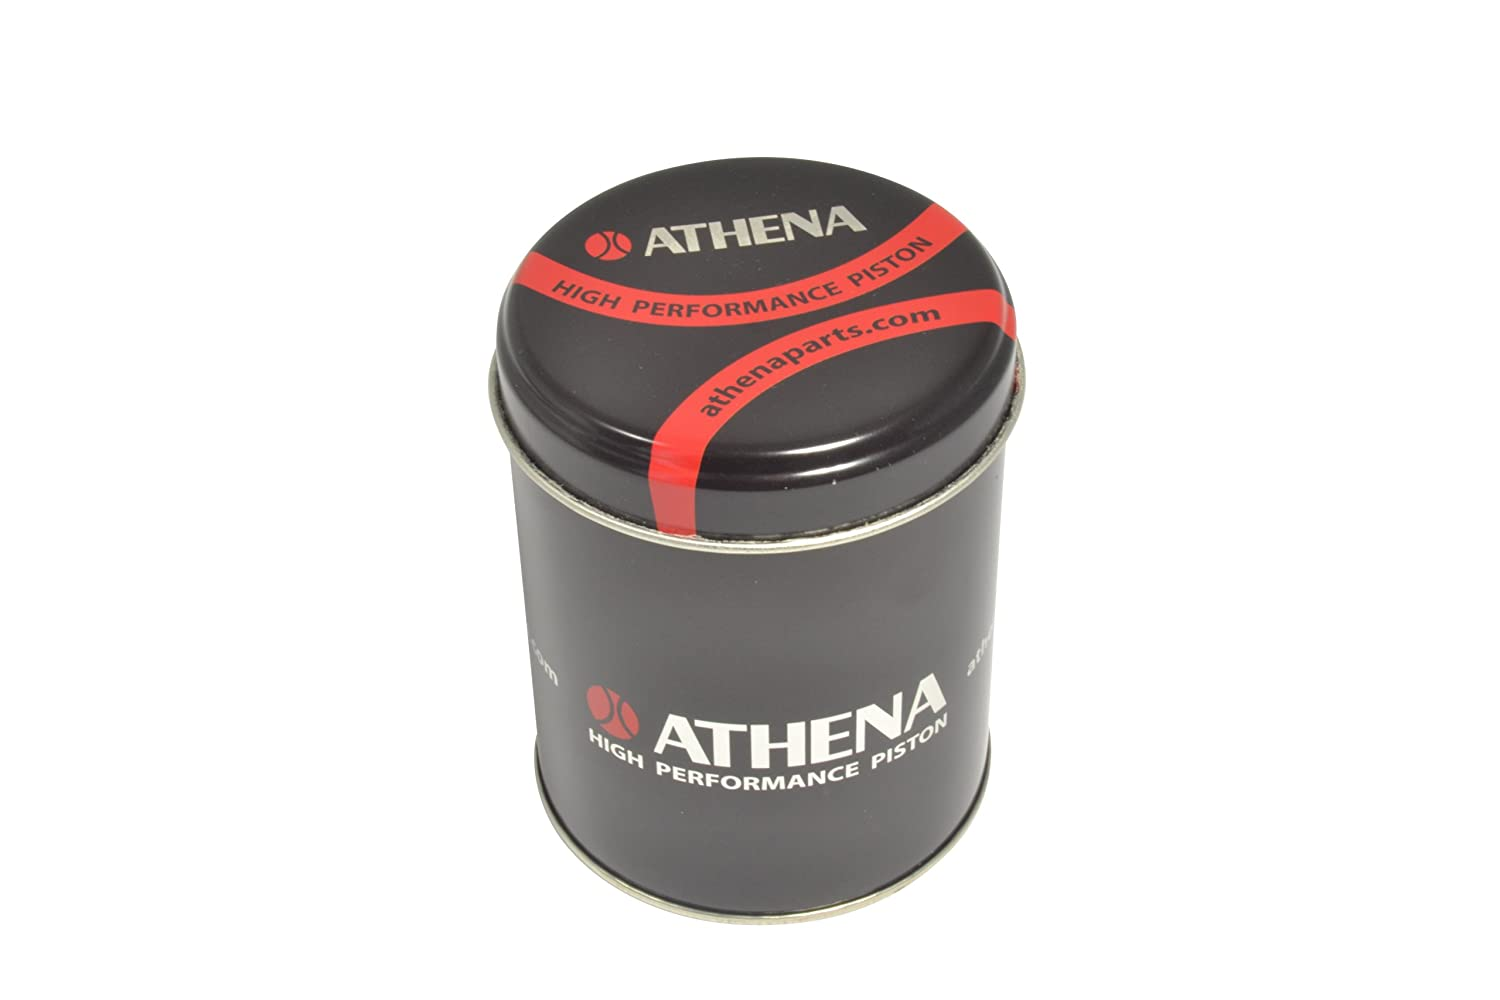 S4F054500010 54.45mm Diameter Piston Kit Athena